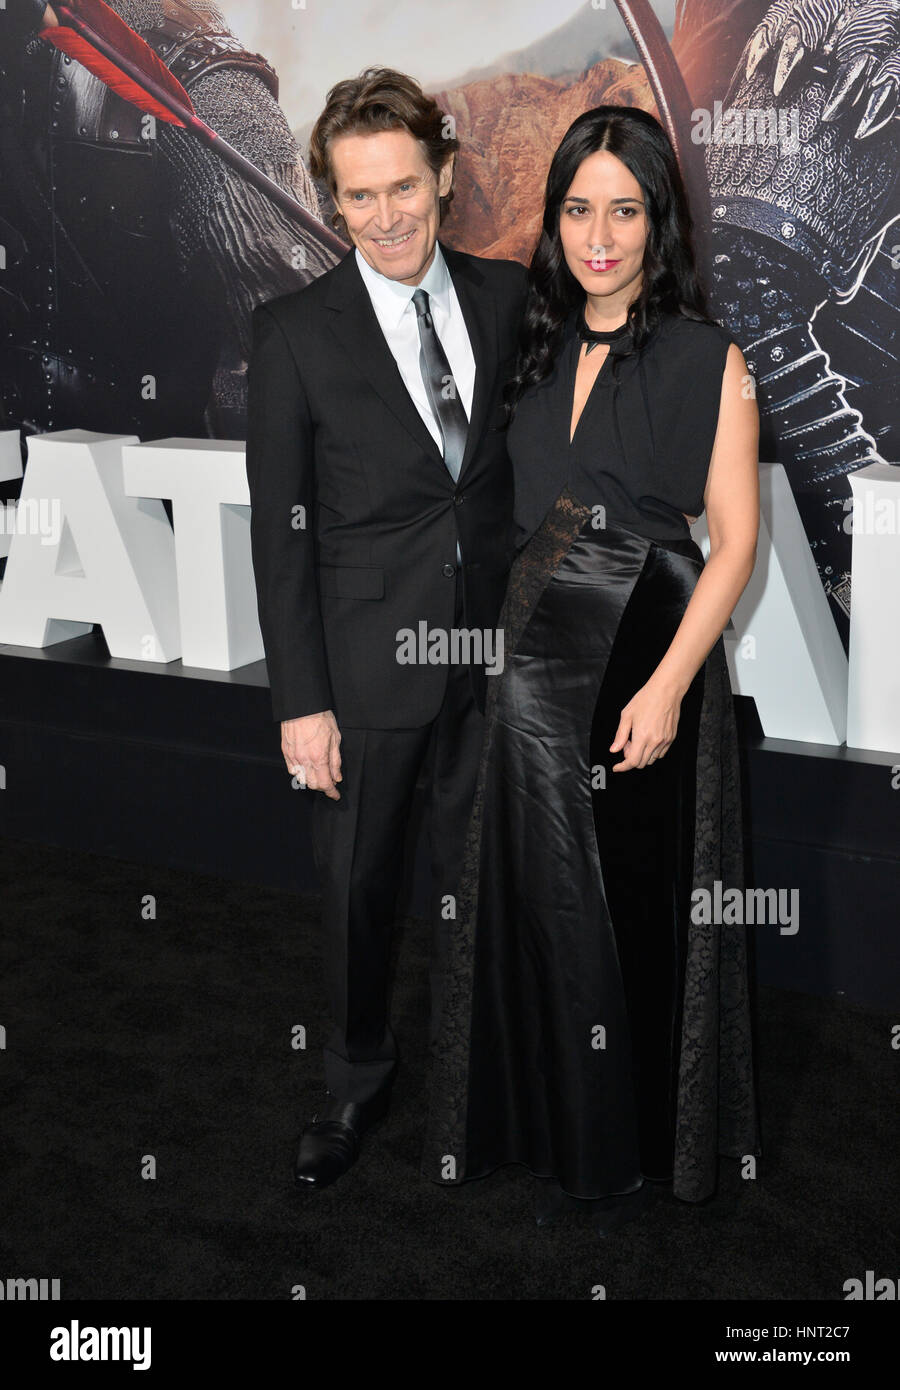 Oscars Red Carpet 2019: See Your Favorite Hollywood Couples!  Willem Dafoe And Wife